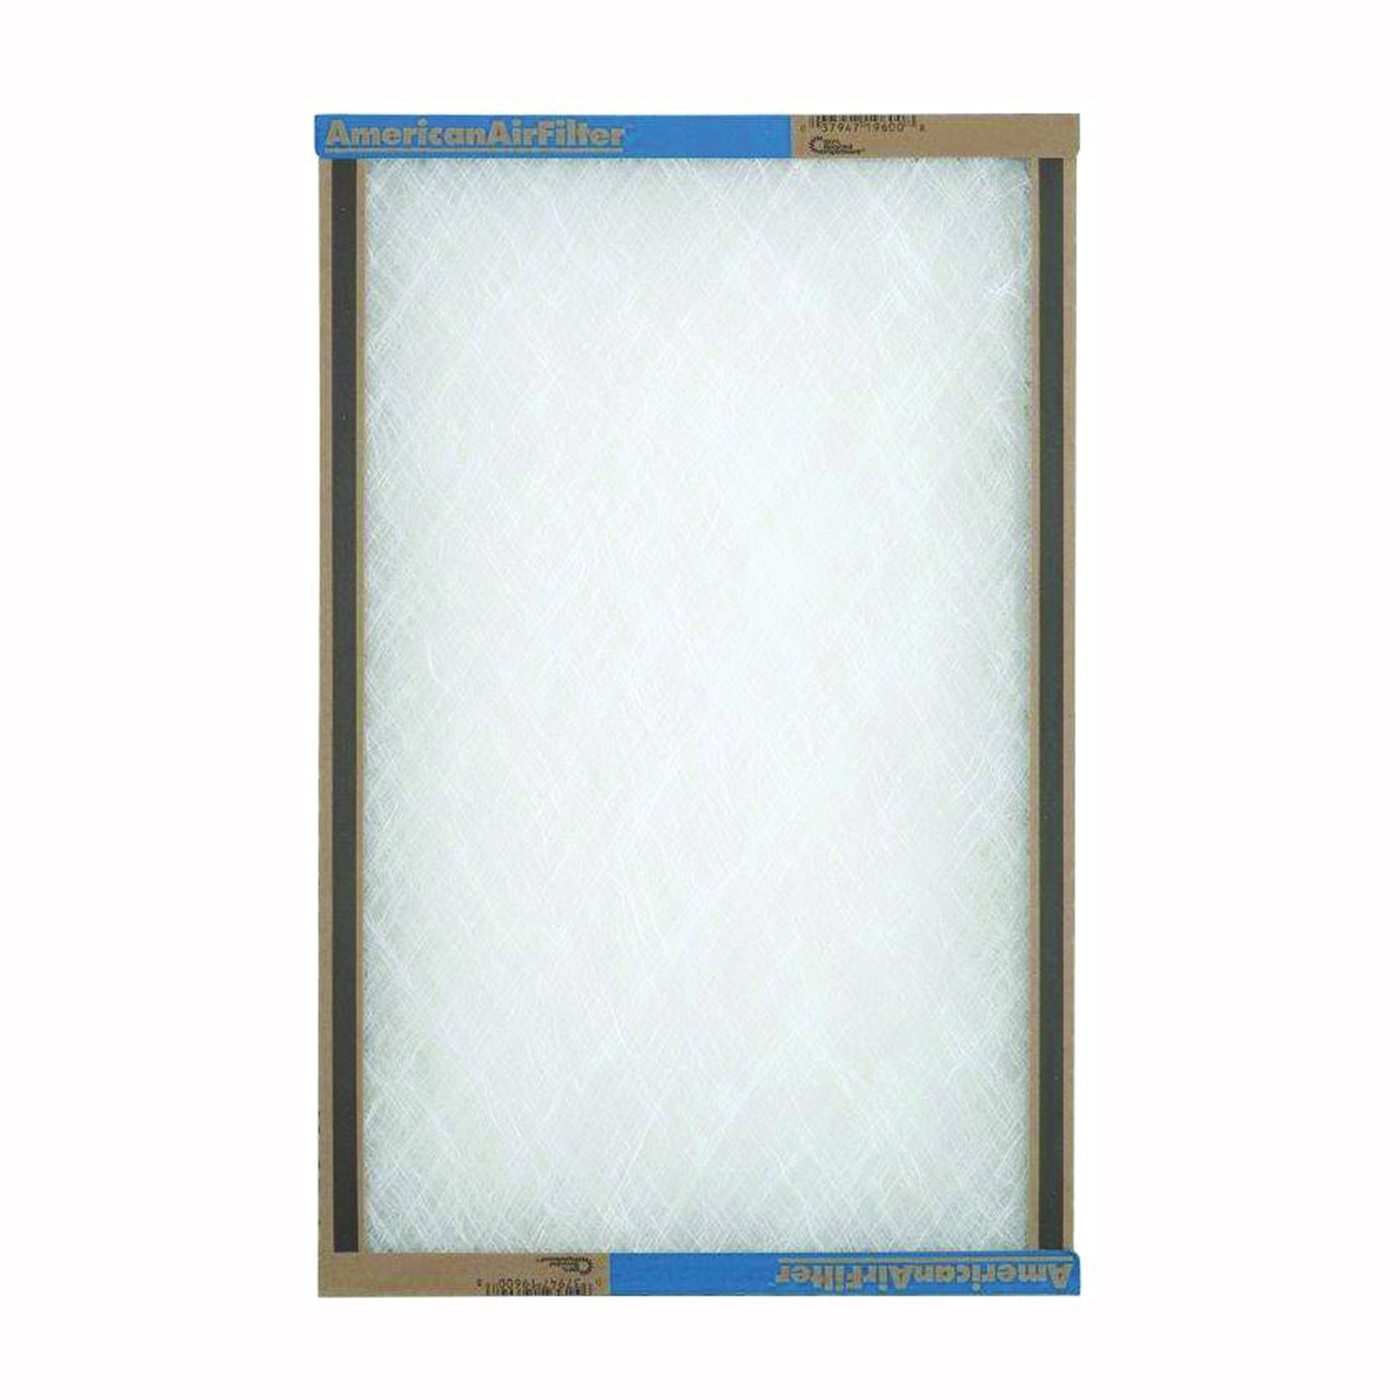 Picture of AAF 118251 Panel Filter, 25 in L, 18 in W, Chipboard Frame